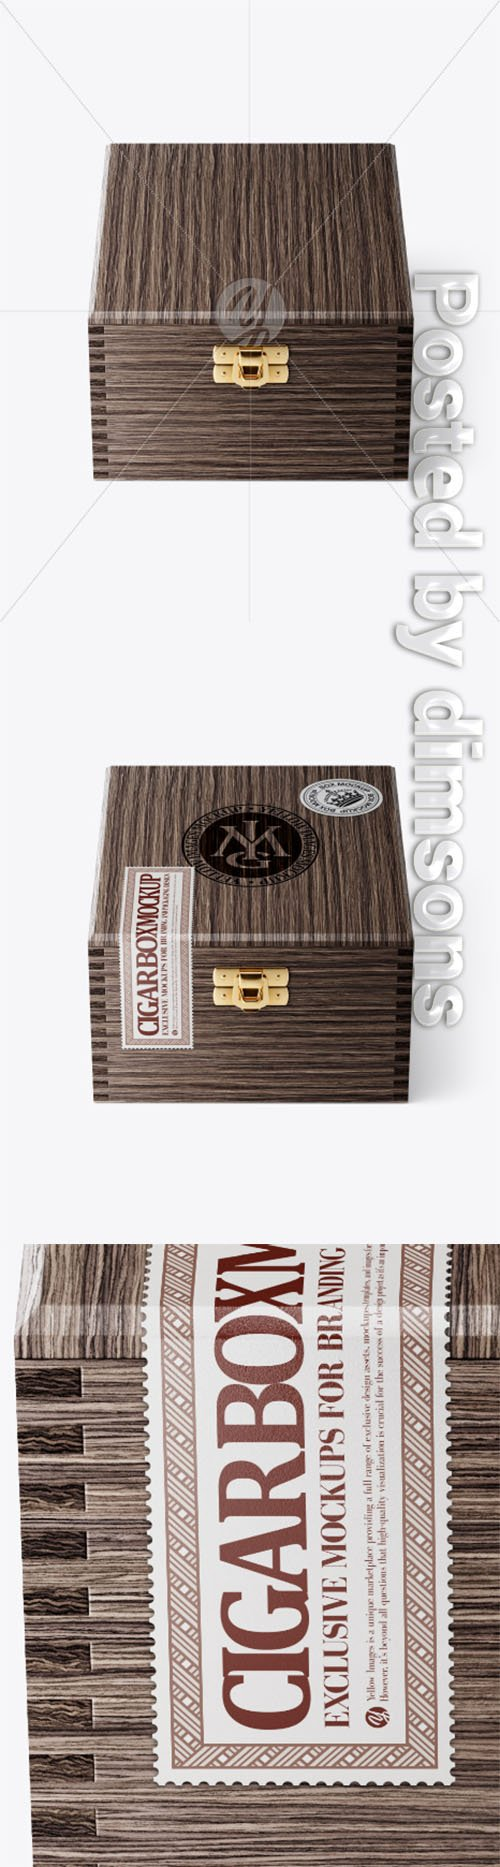 Wooden Cigar Box Mockup - Front View (High Angle Shot) 33785 TIF